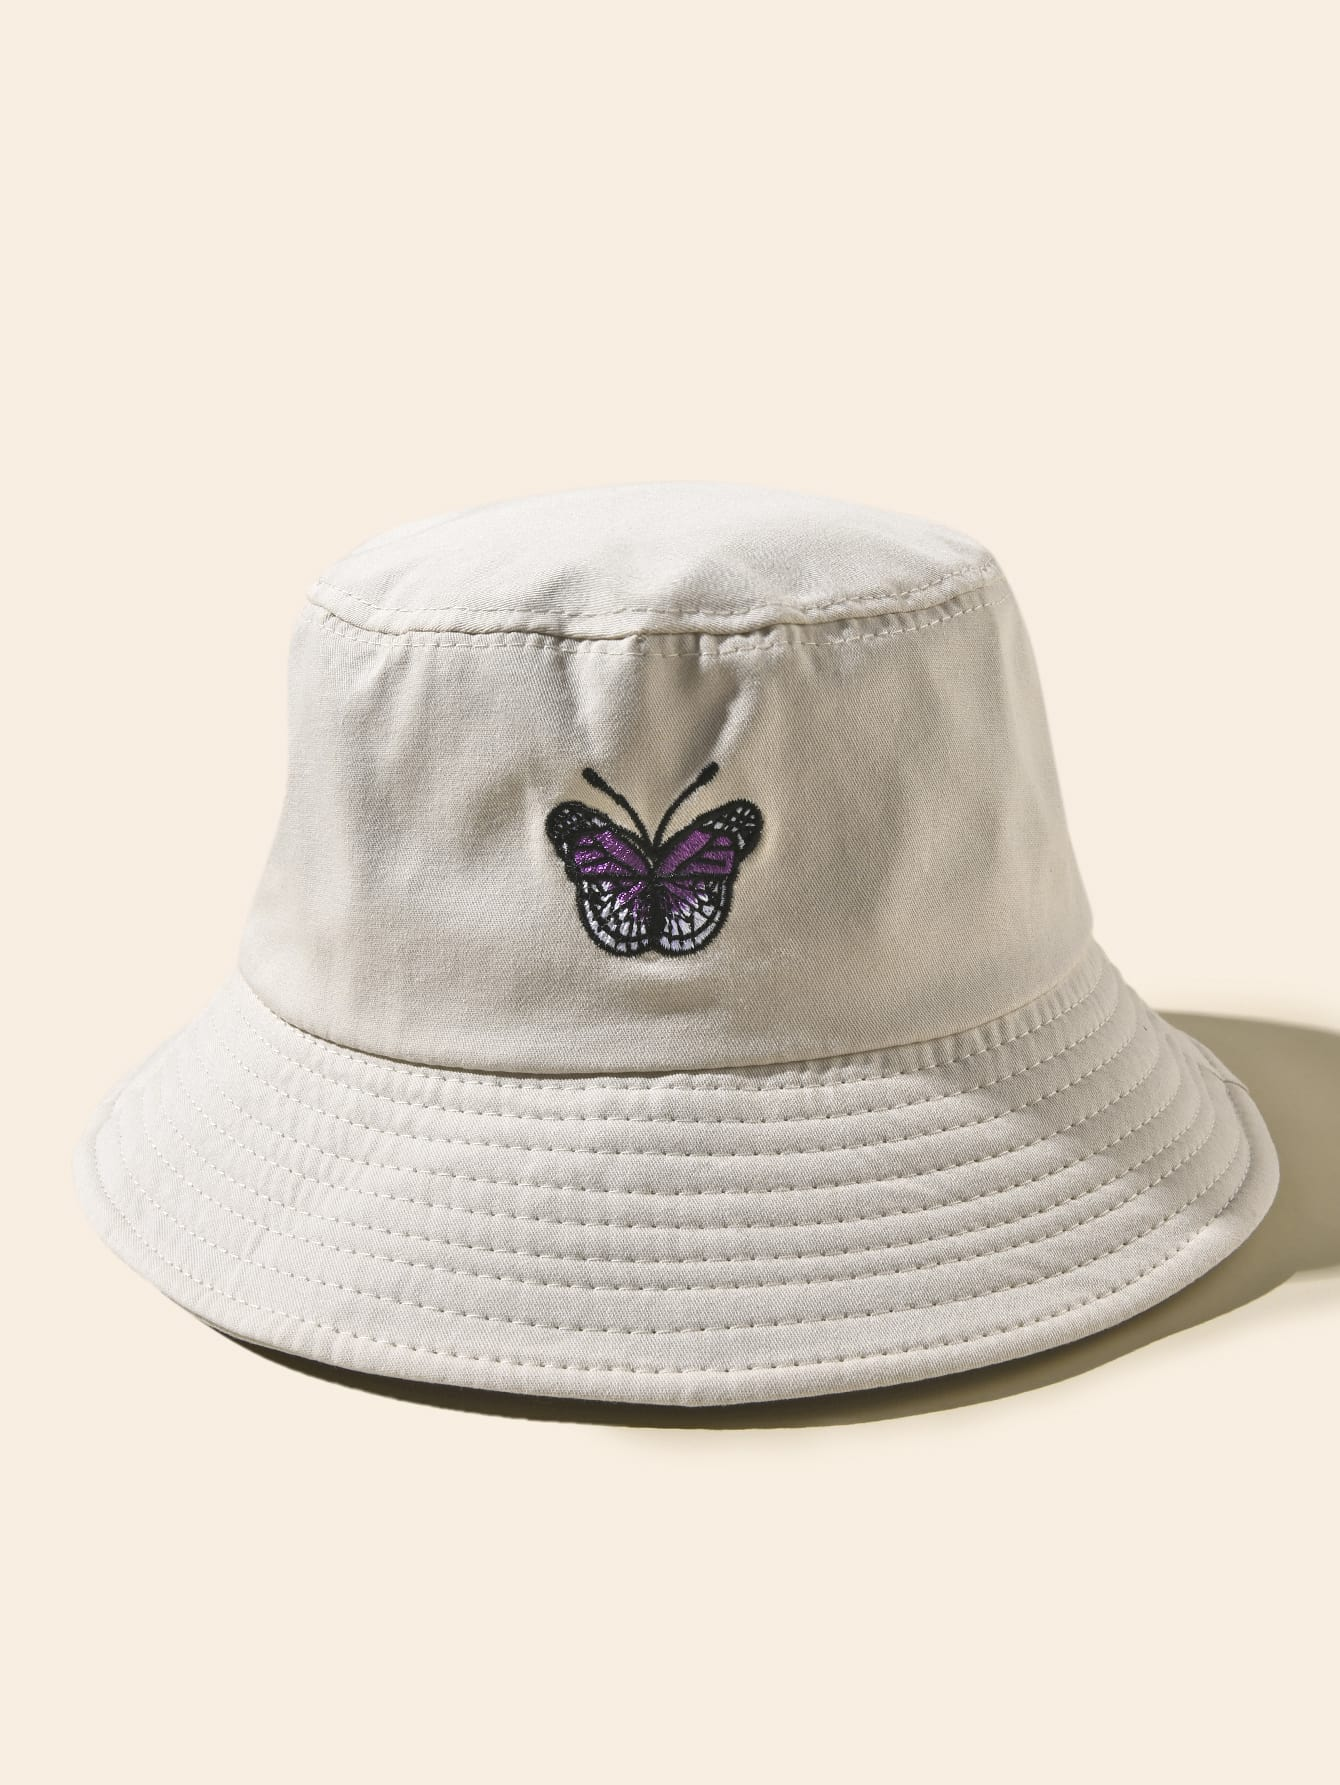 Butterfly Embroidery Bucket Hat Shein Uk